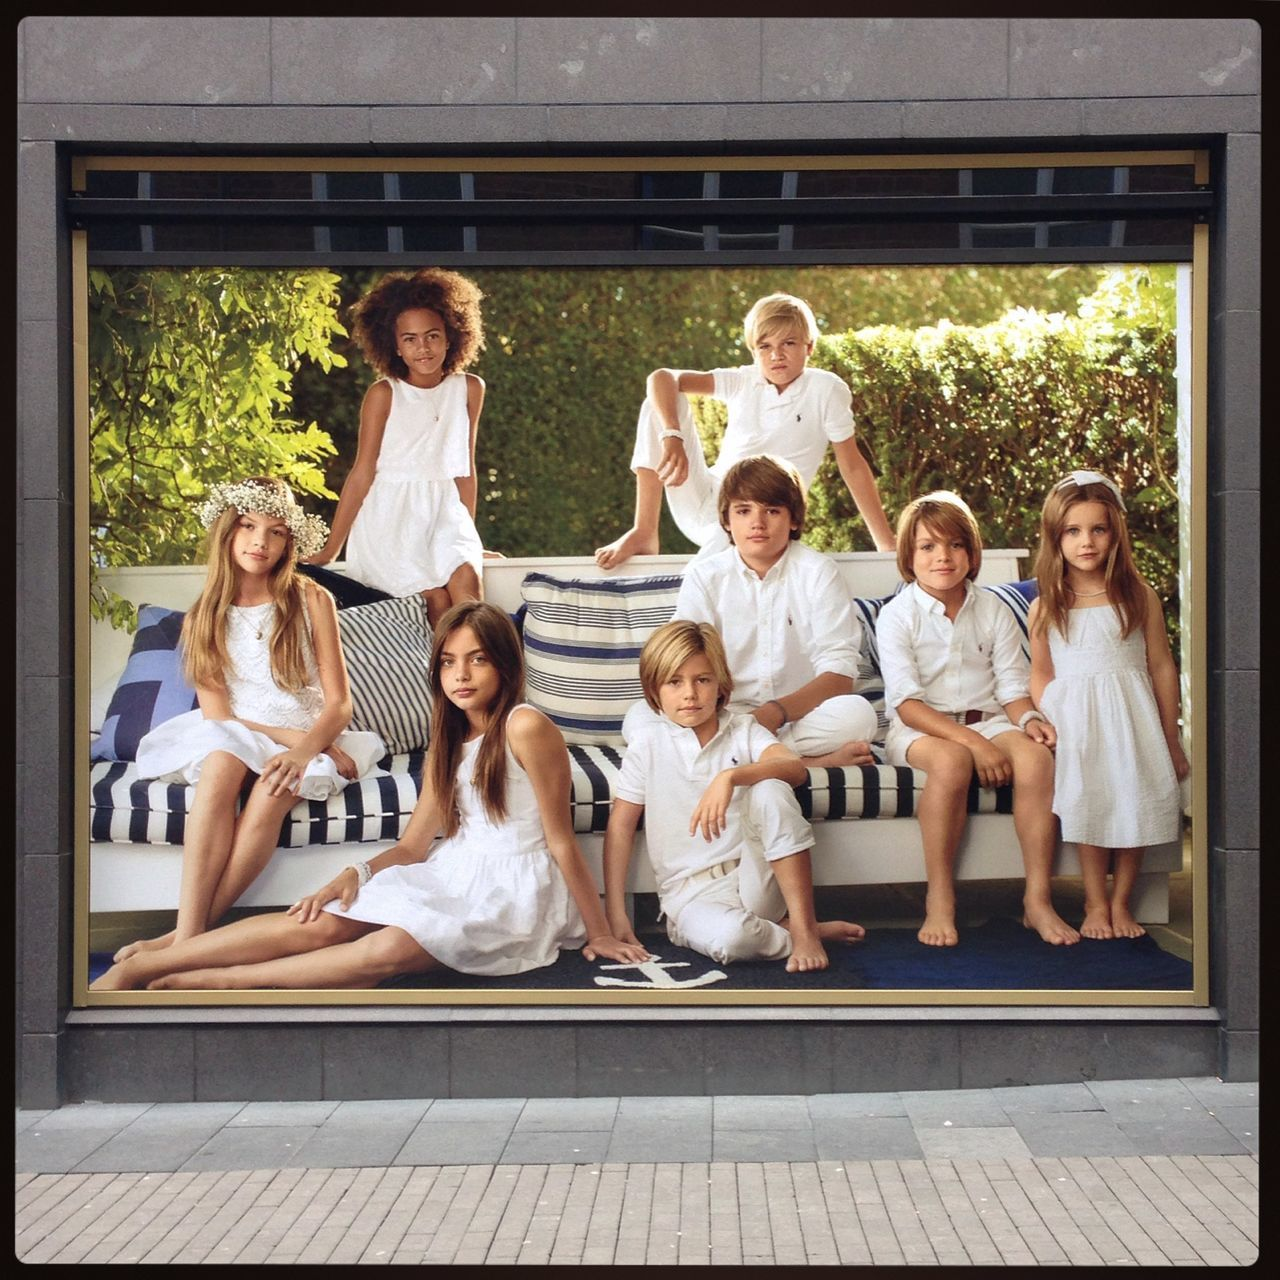 Adult Advertising Archival Boys Cheerful Child Childhood Community Education Females Friendship Fun Girls Group Of People Happiness Offspring Parent People Shopping Sitting Smiling Student Teenager Togetherness Women